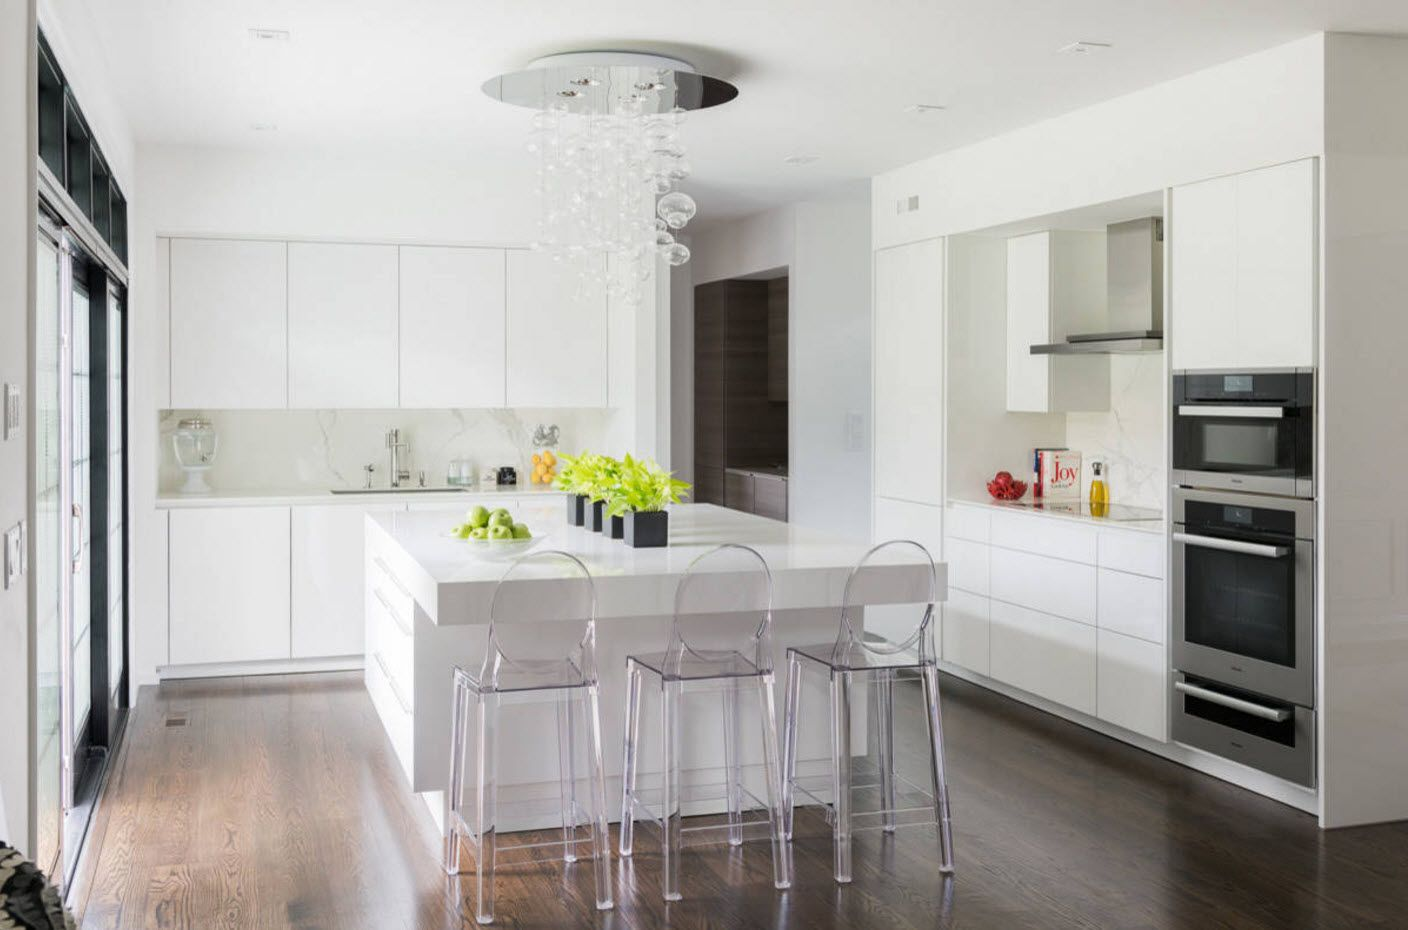 White kitchen interior with steel touch of lighting and chairs' carcases